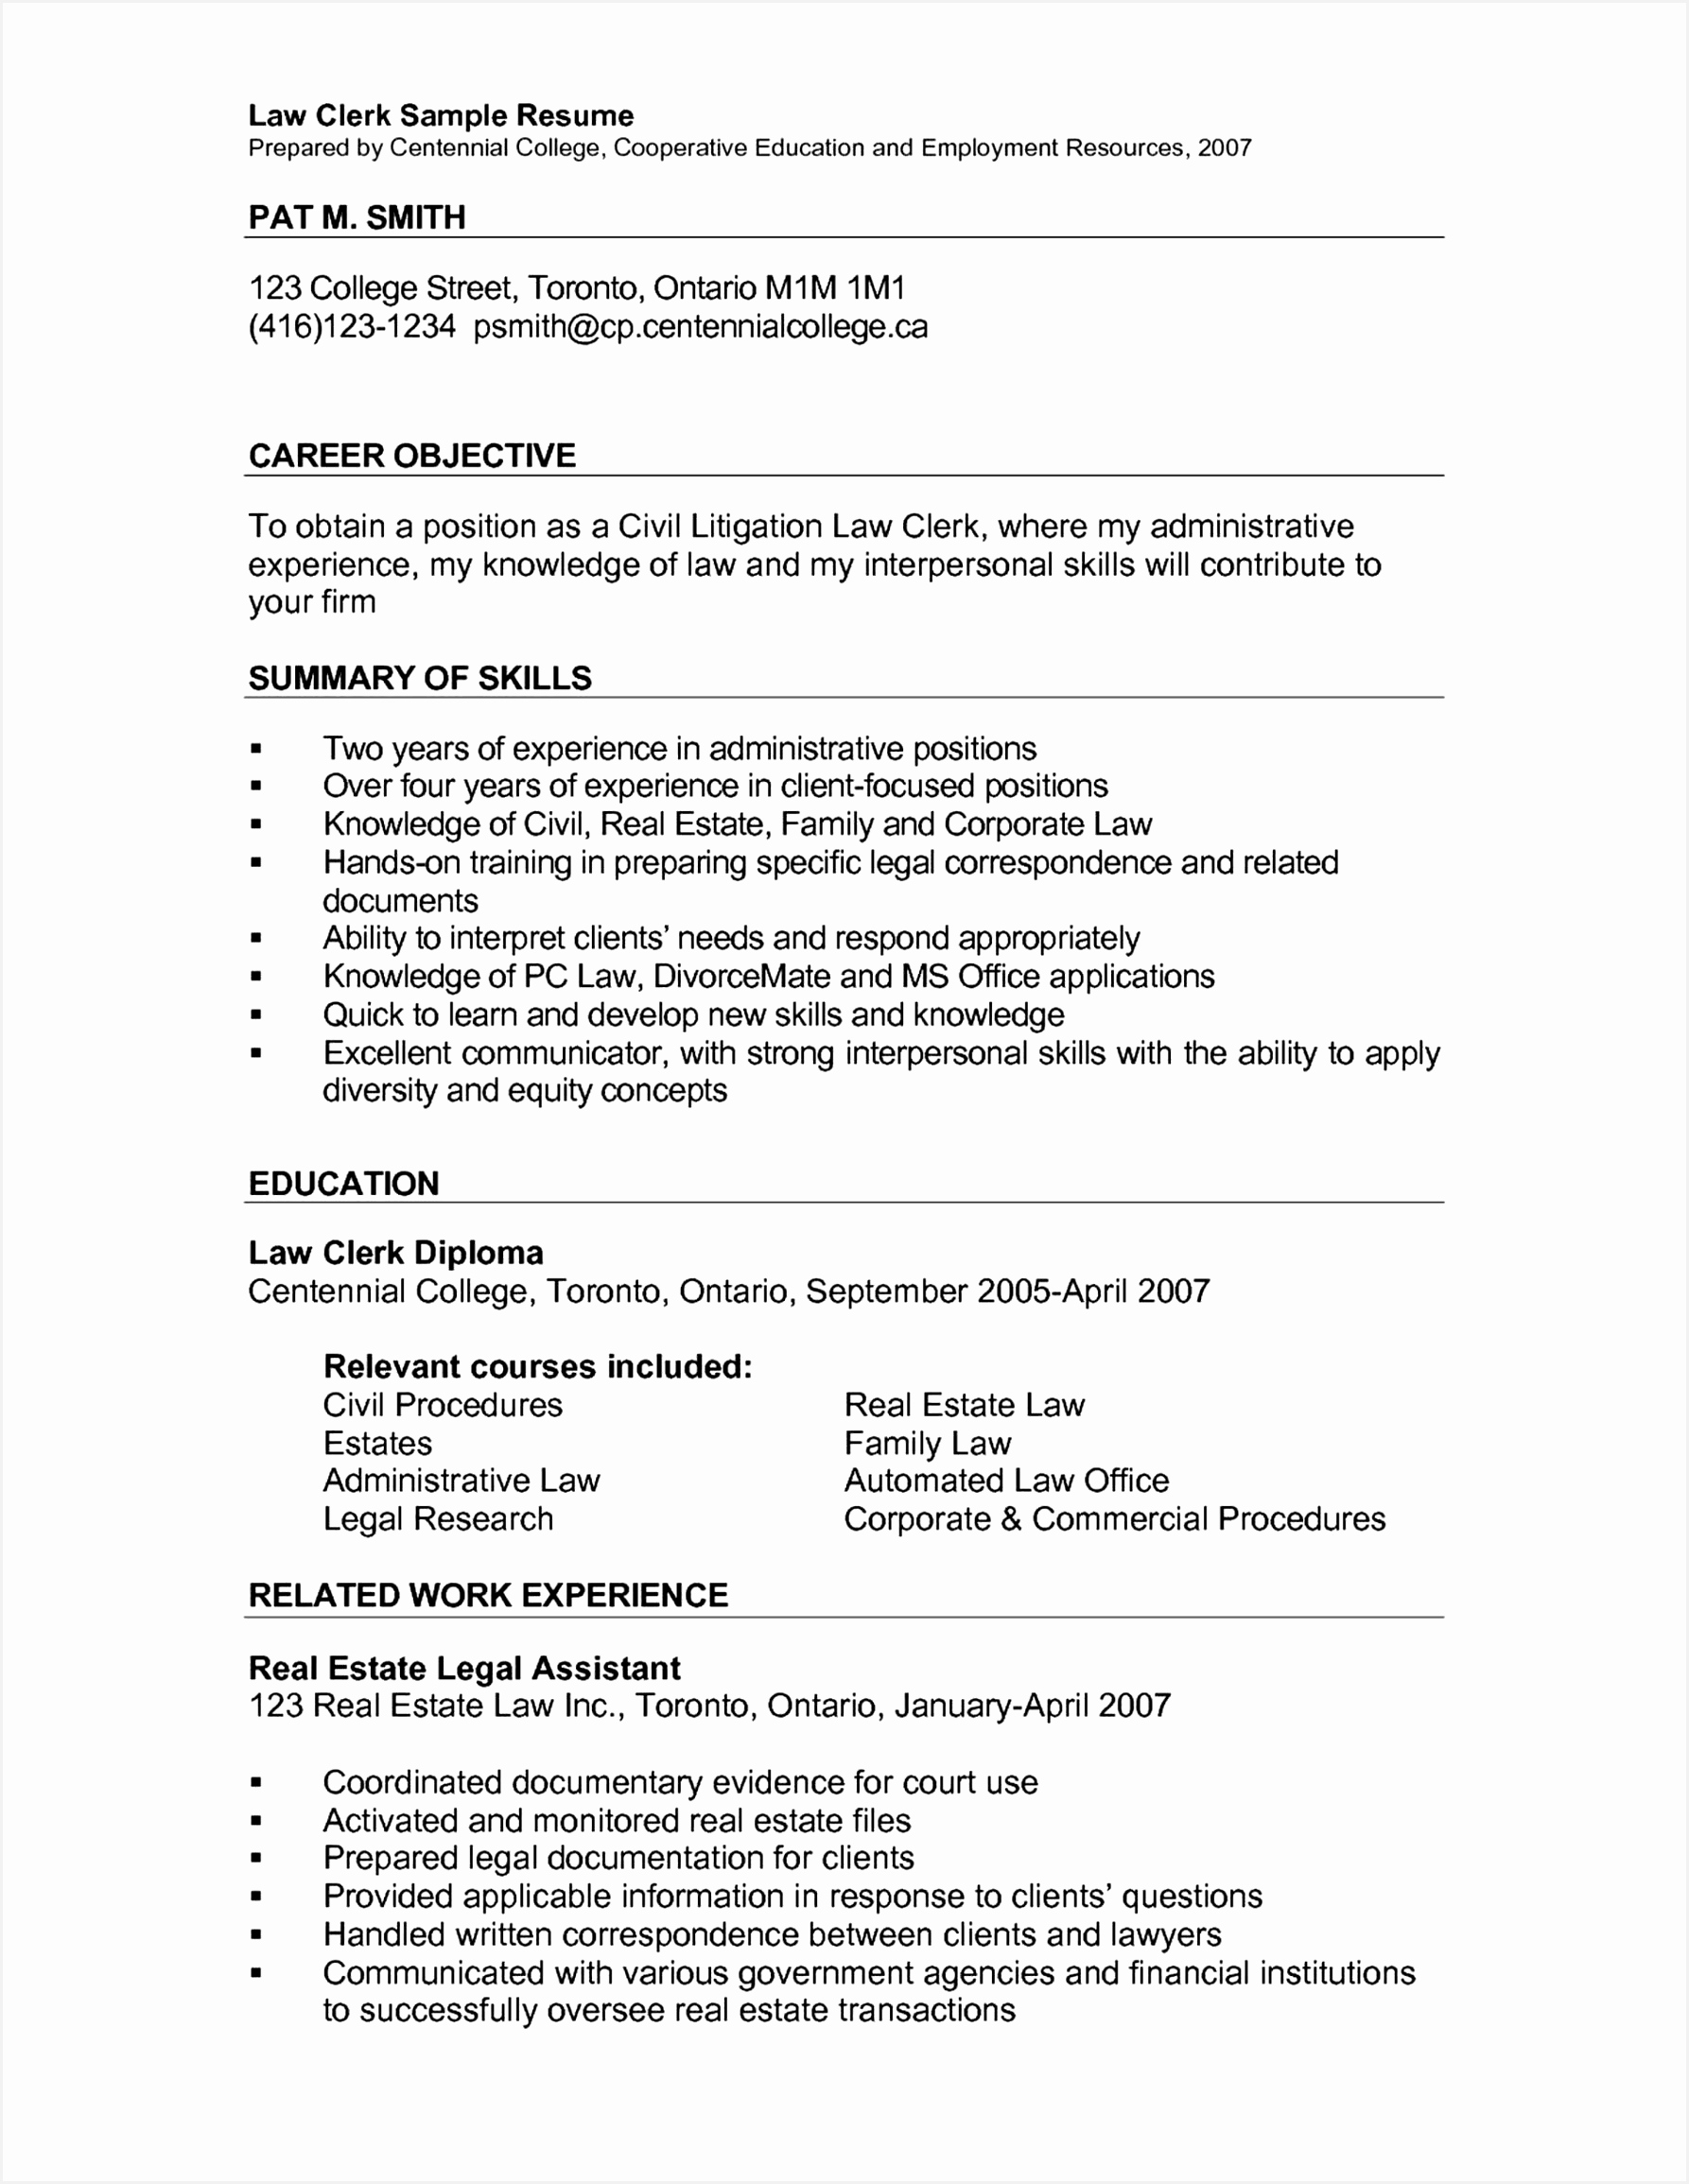 Legal Resume Template Beautiful Law Student Resume Template Best Resume Examples 0d Legal Resume Template 23101786jwqx